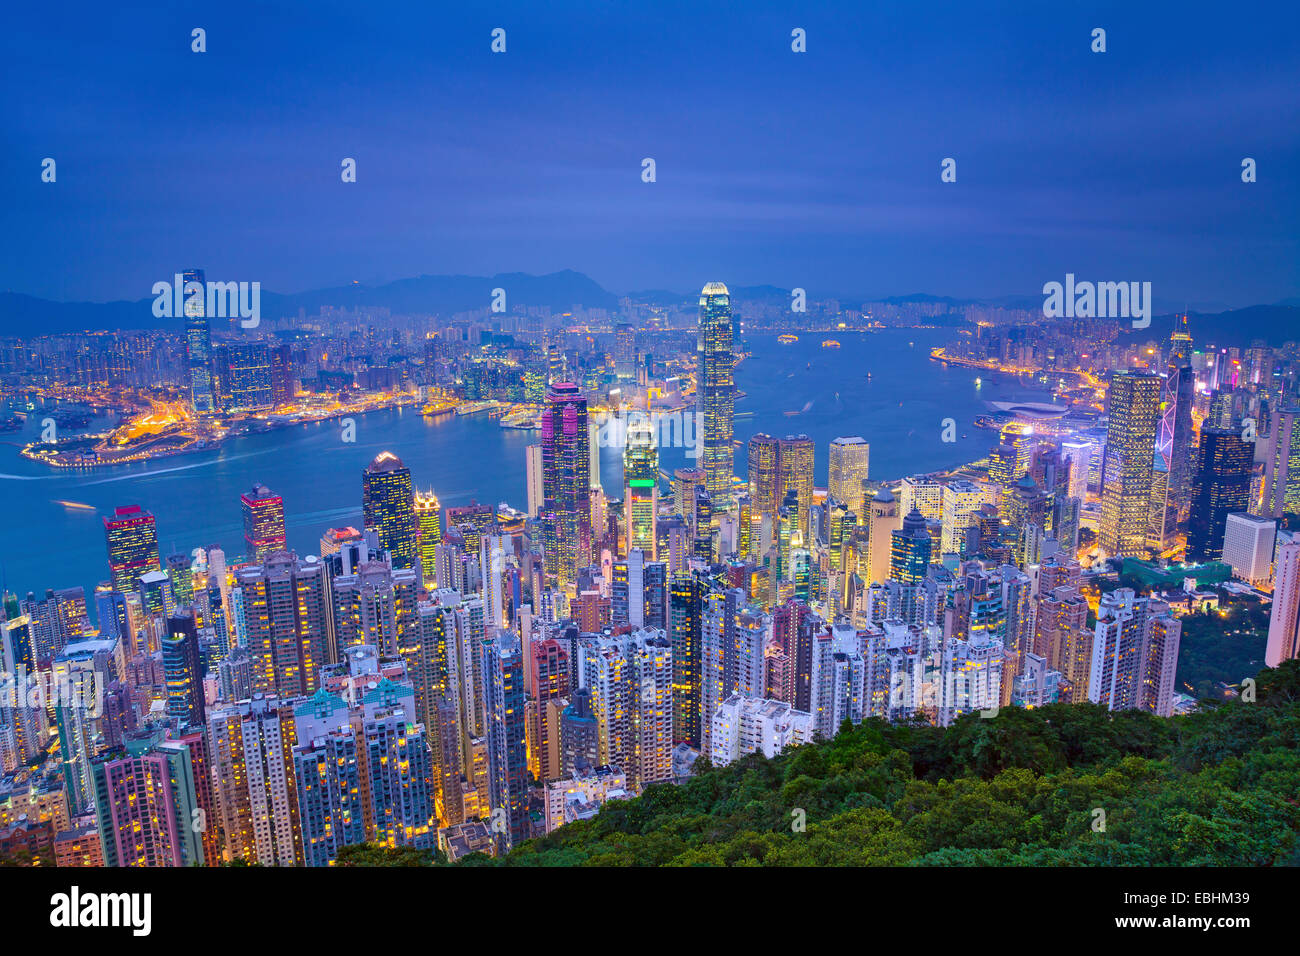 Hong Kong. Image of Hong Kong with many skyscrapers during twilight blue hour. - Stock Image